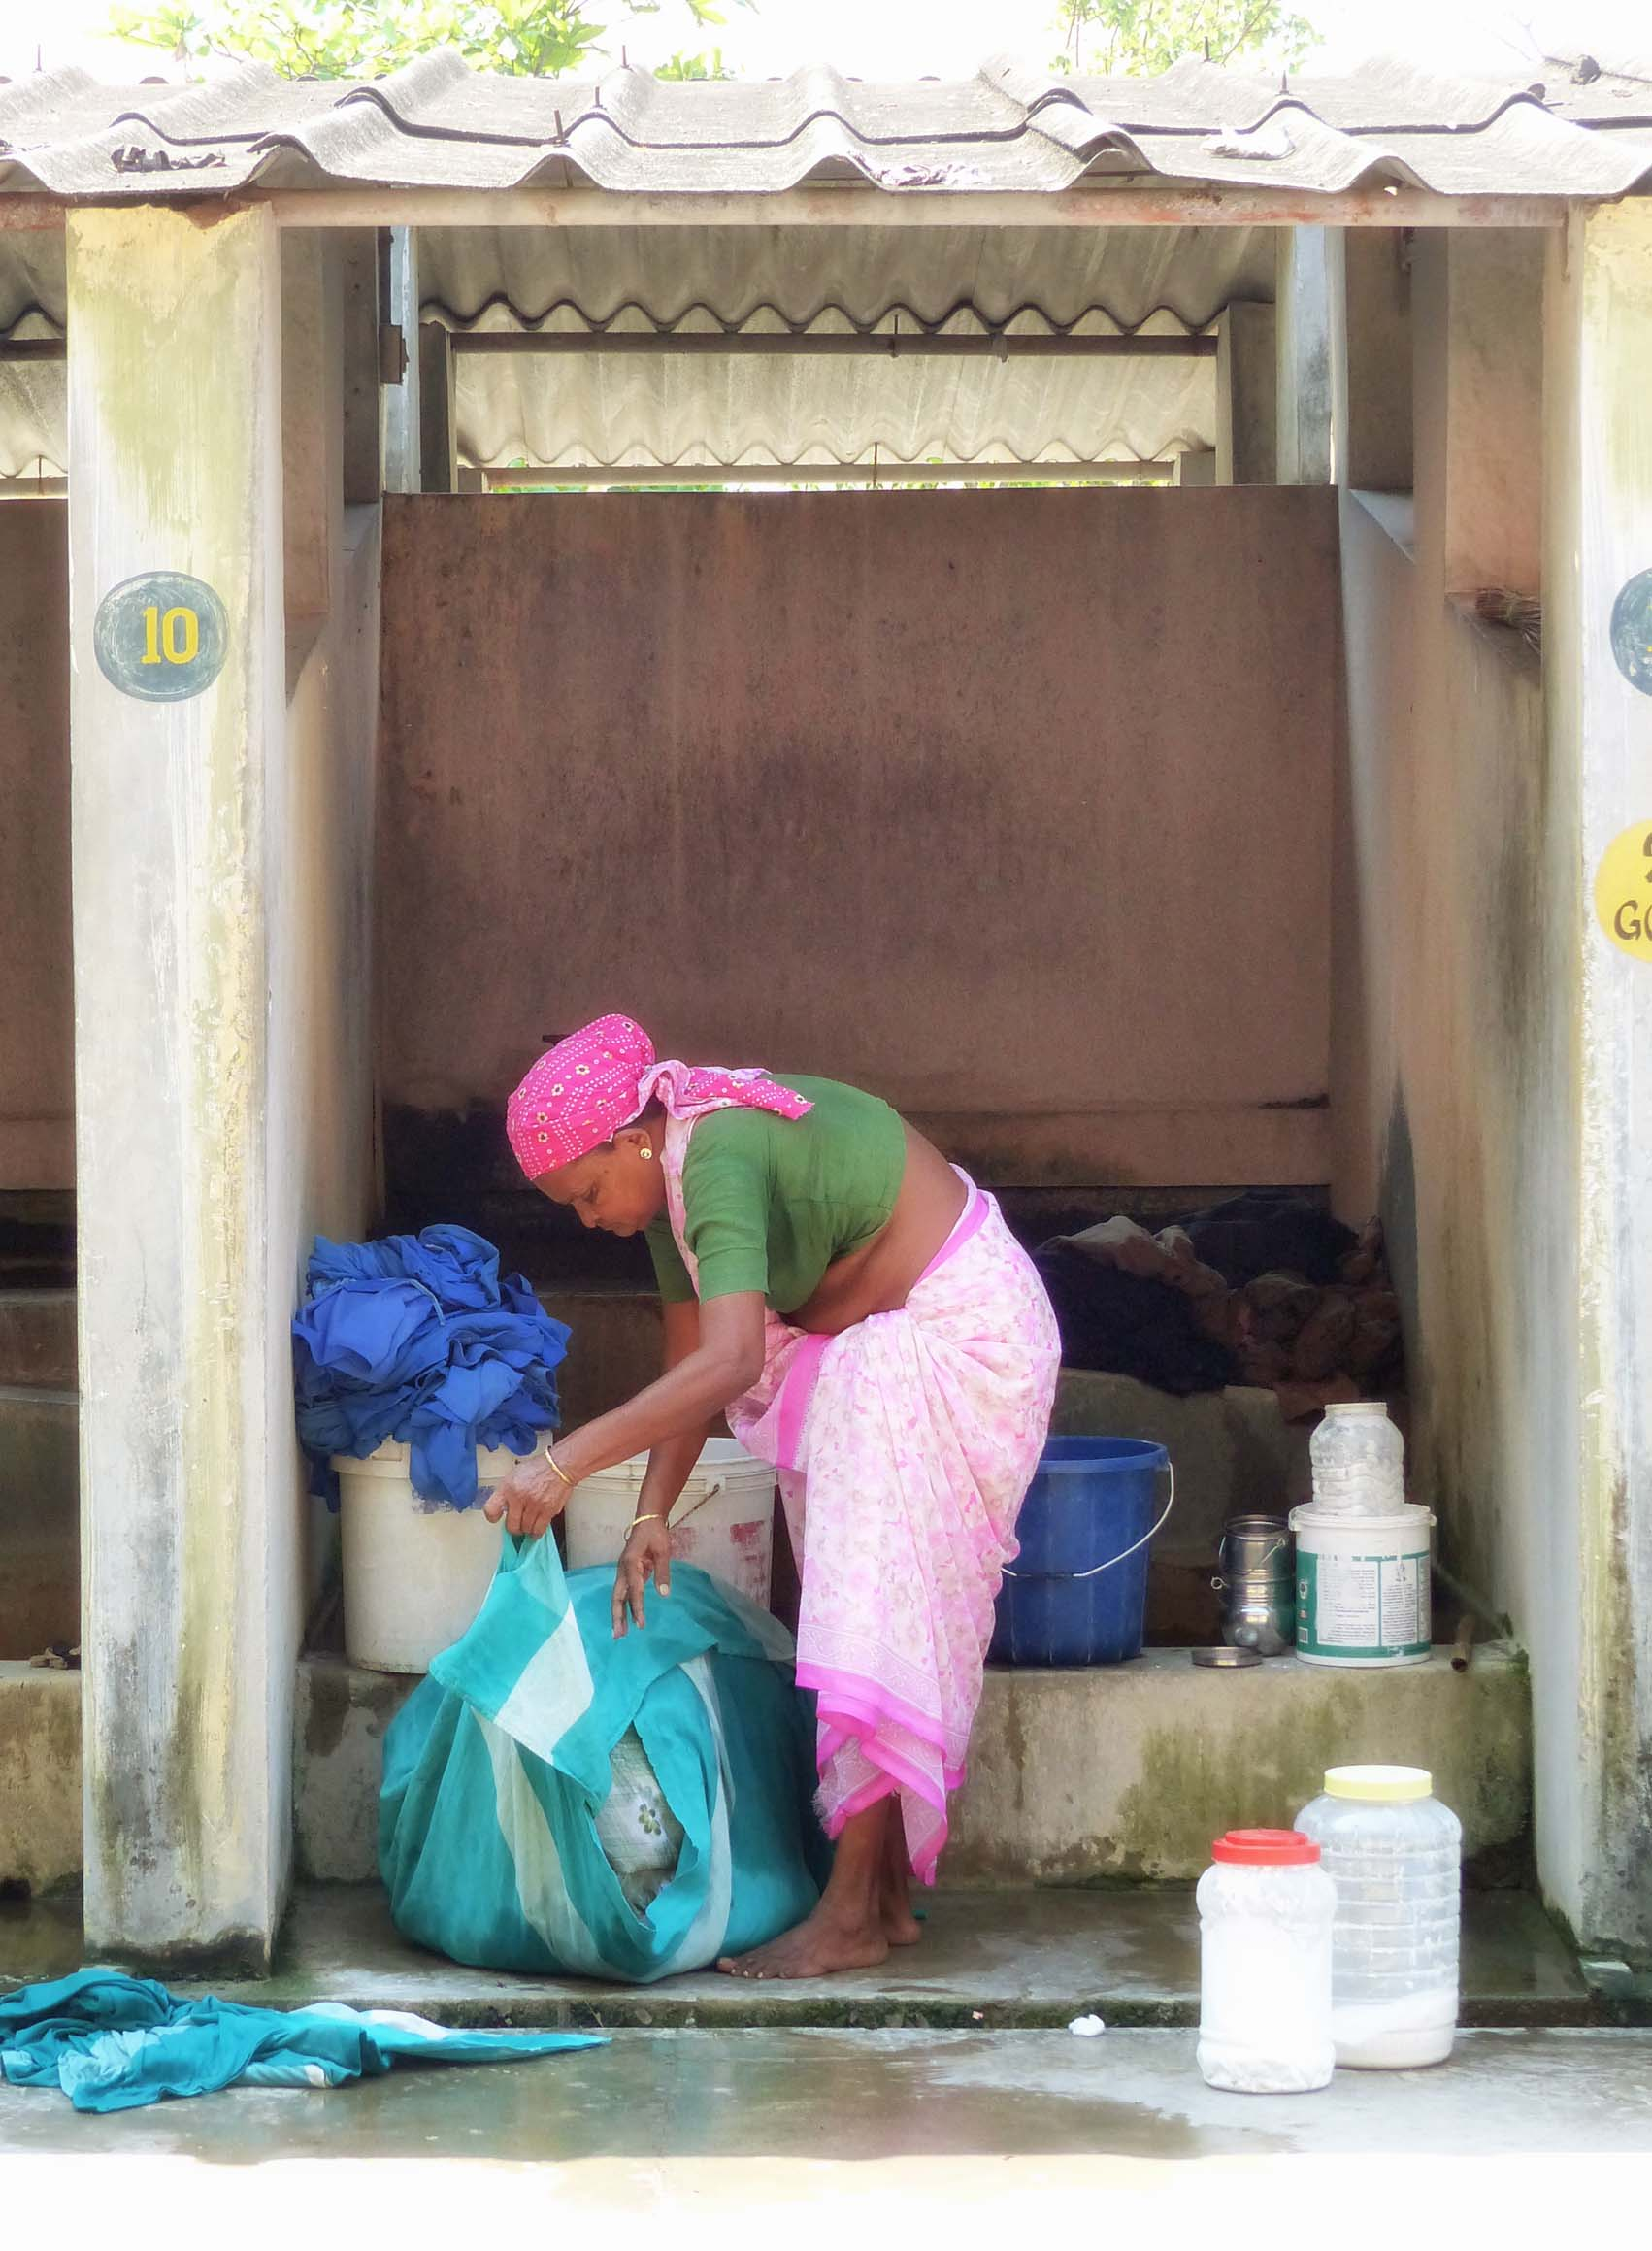 Woman washing clothes in a stone building